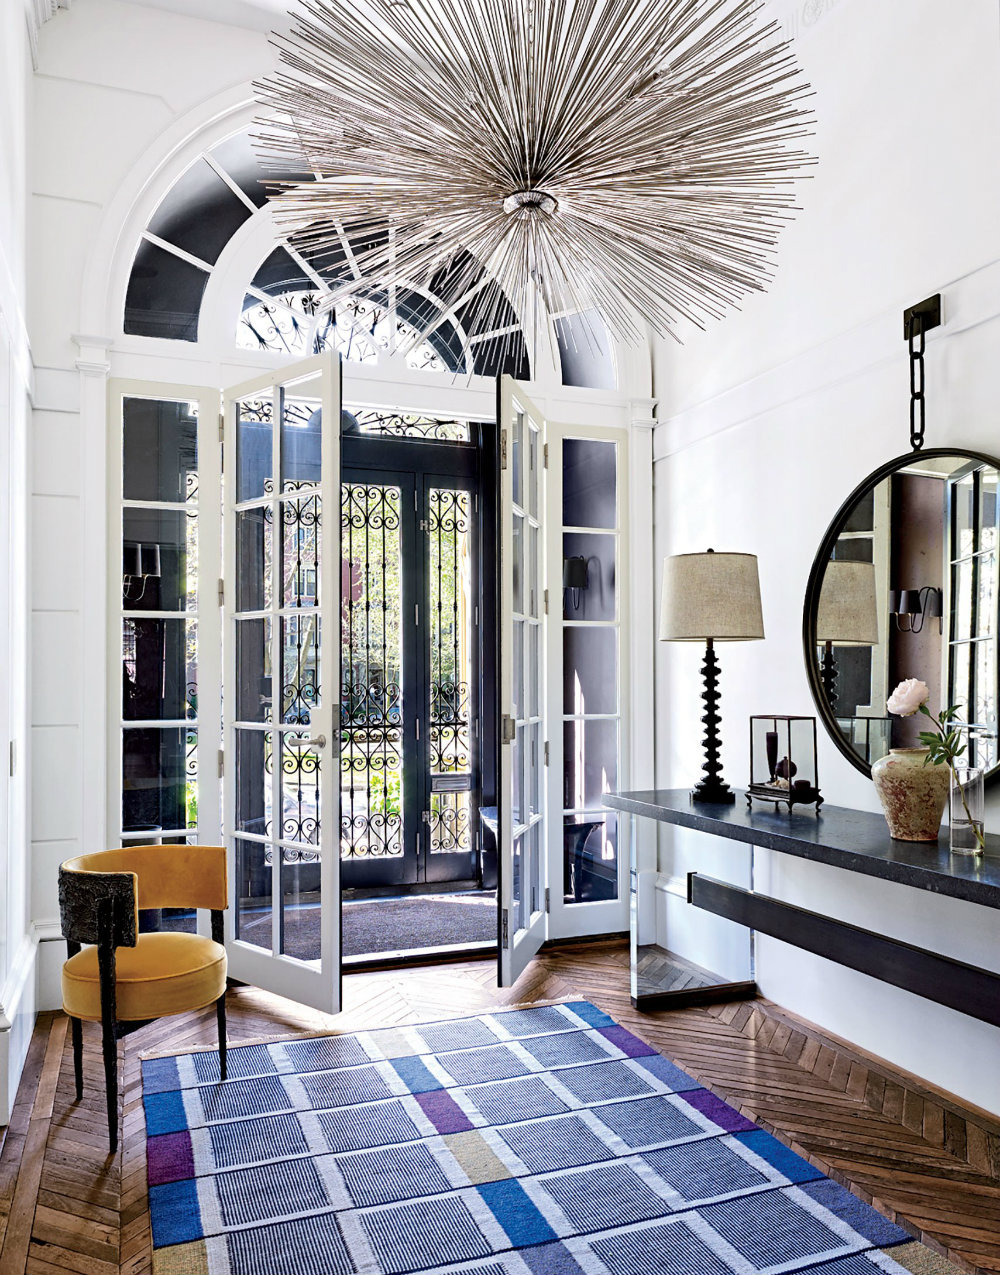 7 Elegant Entryways for the Home of Your Dreams entryway ideas 9 Entryway Ideas to Transform Your Home into a Luxury Paradise 7 Elegant Entryways for the Home of Your Dreams 04 entryway ideas 9 Entryway Ideas to Transform Your Home into a Luxury Paradise 7 Elegant Entryways for the Home of Your Dreams 04